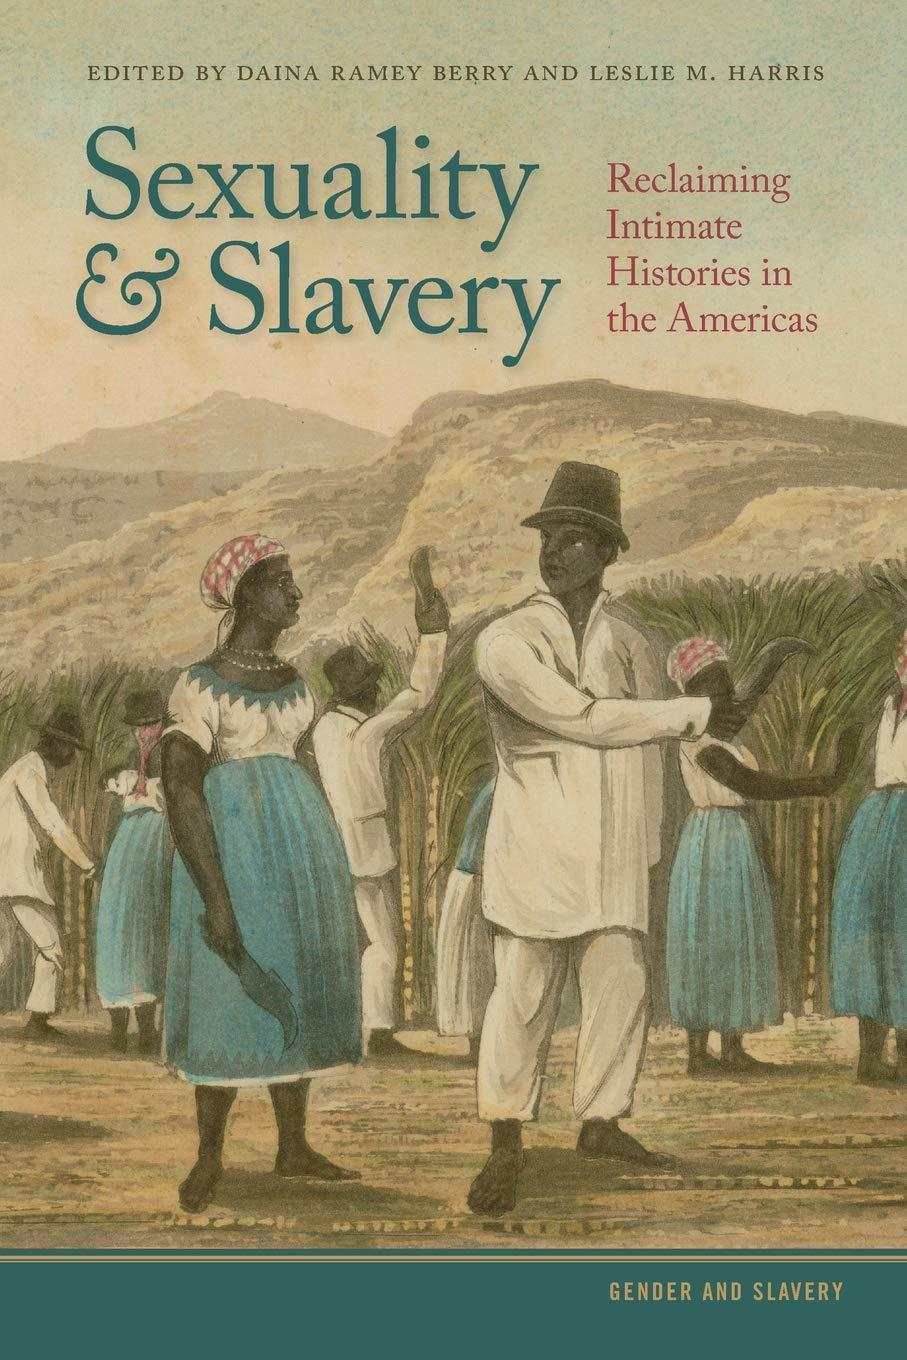 Sexuality and Slavery cover image